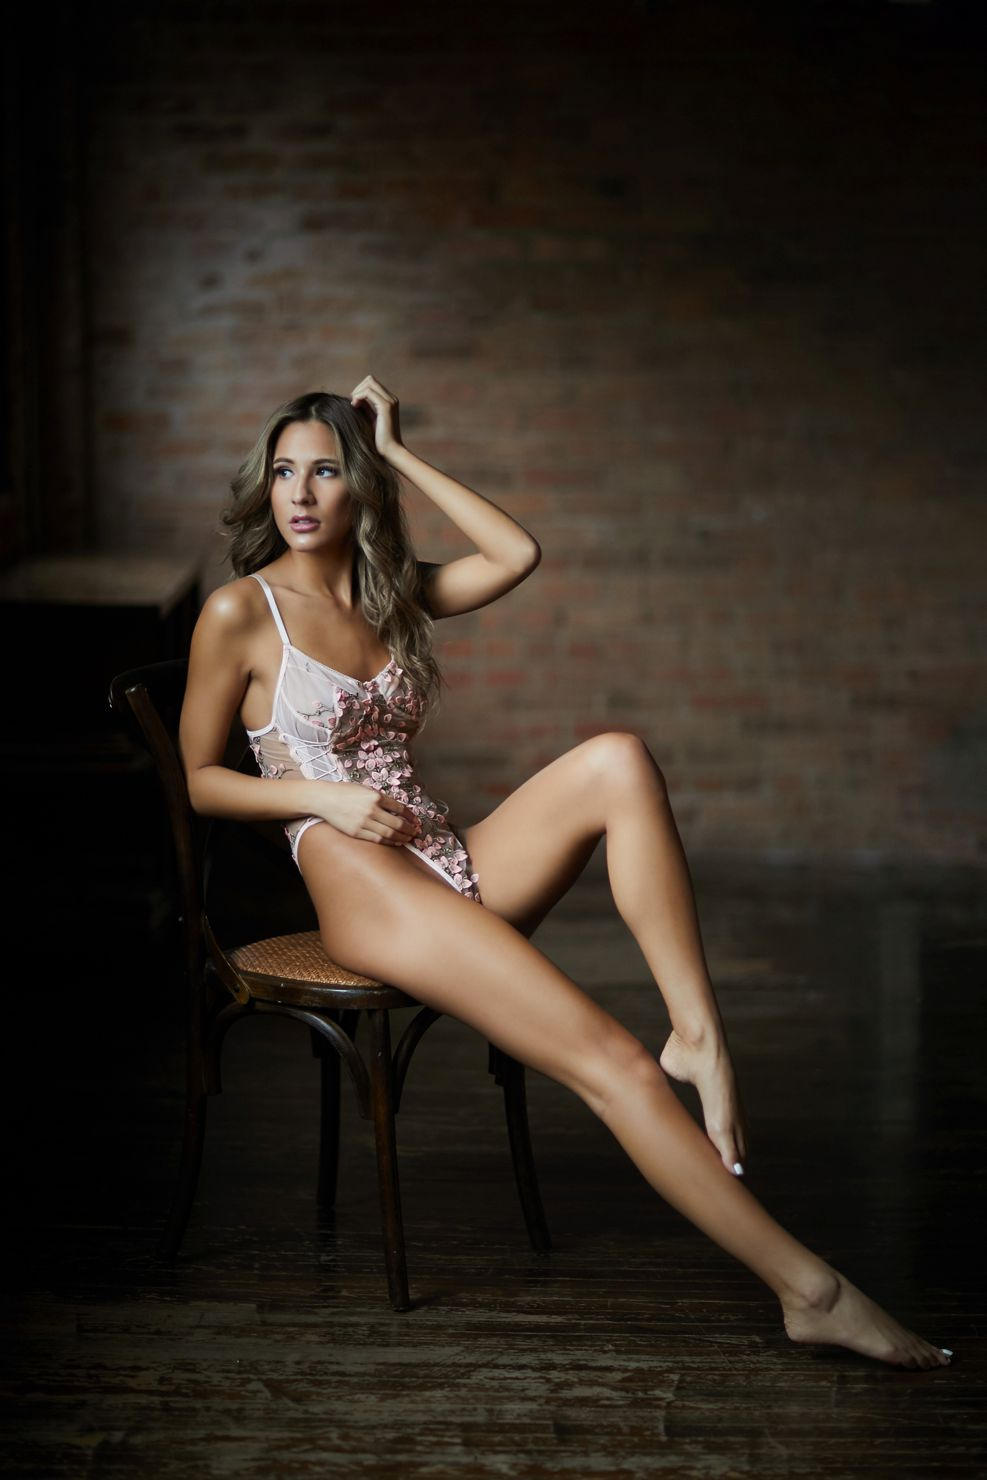 chicago boudoir tasteful sexy risque - Top 3 Reasons Why You Should Have a Boudoir Session.